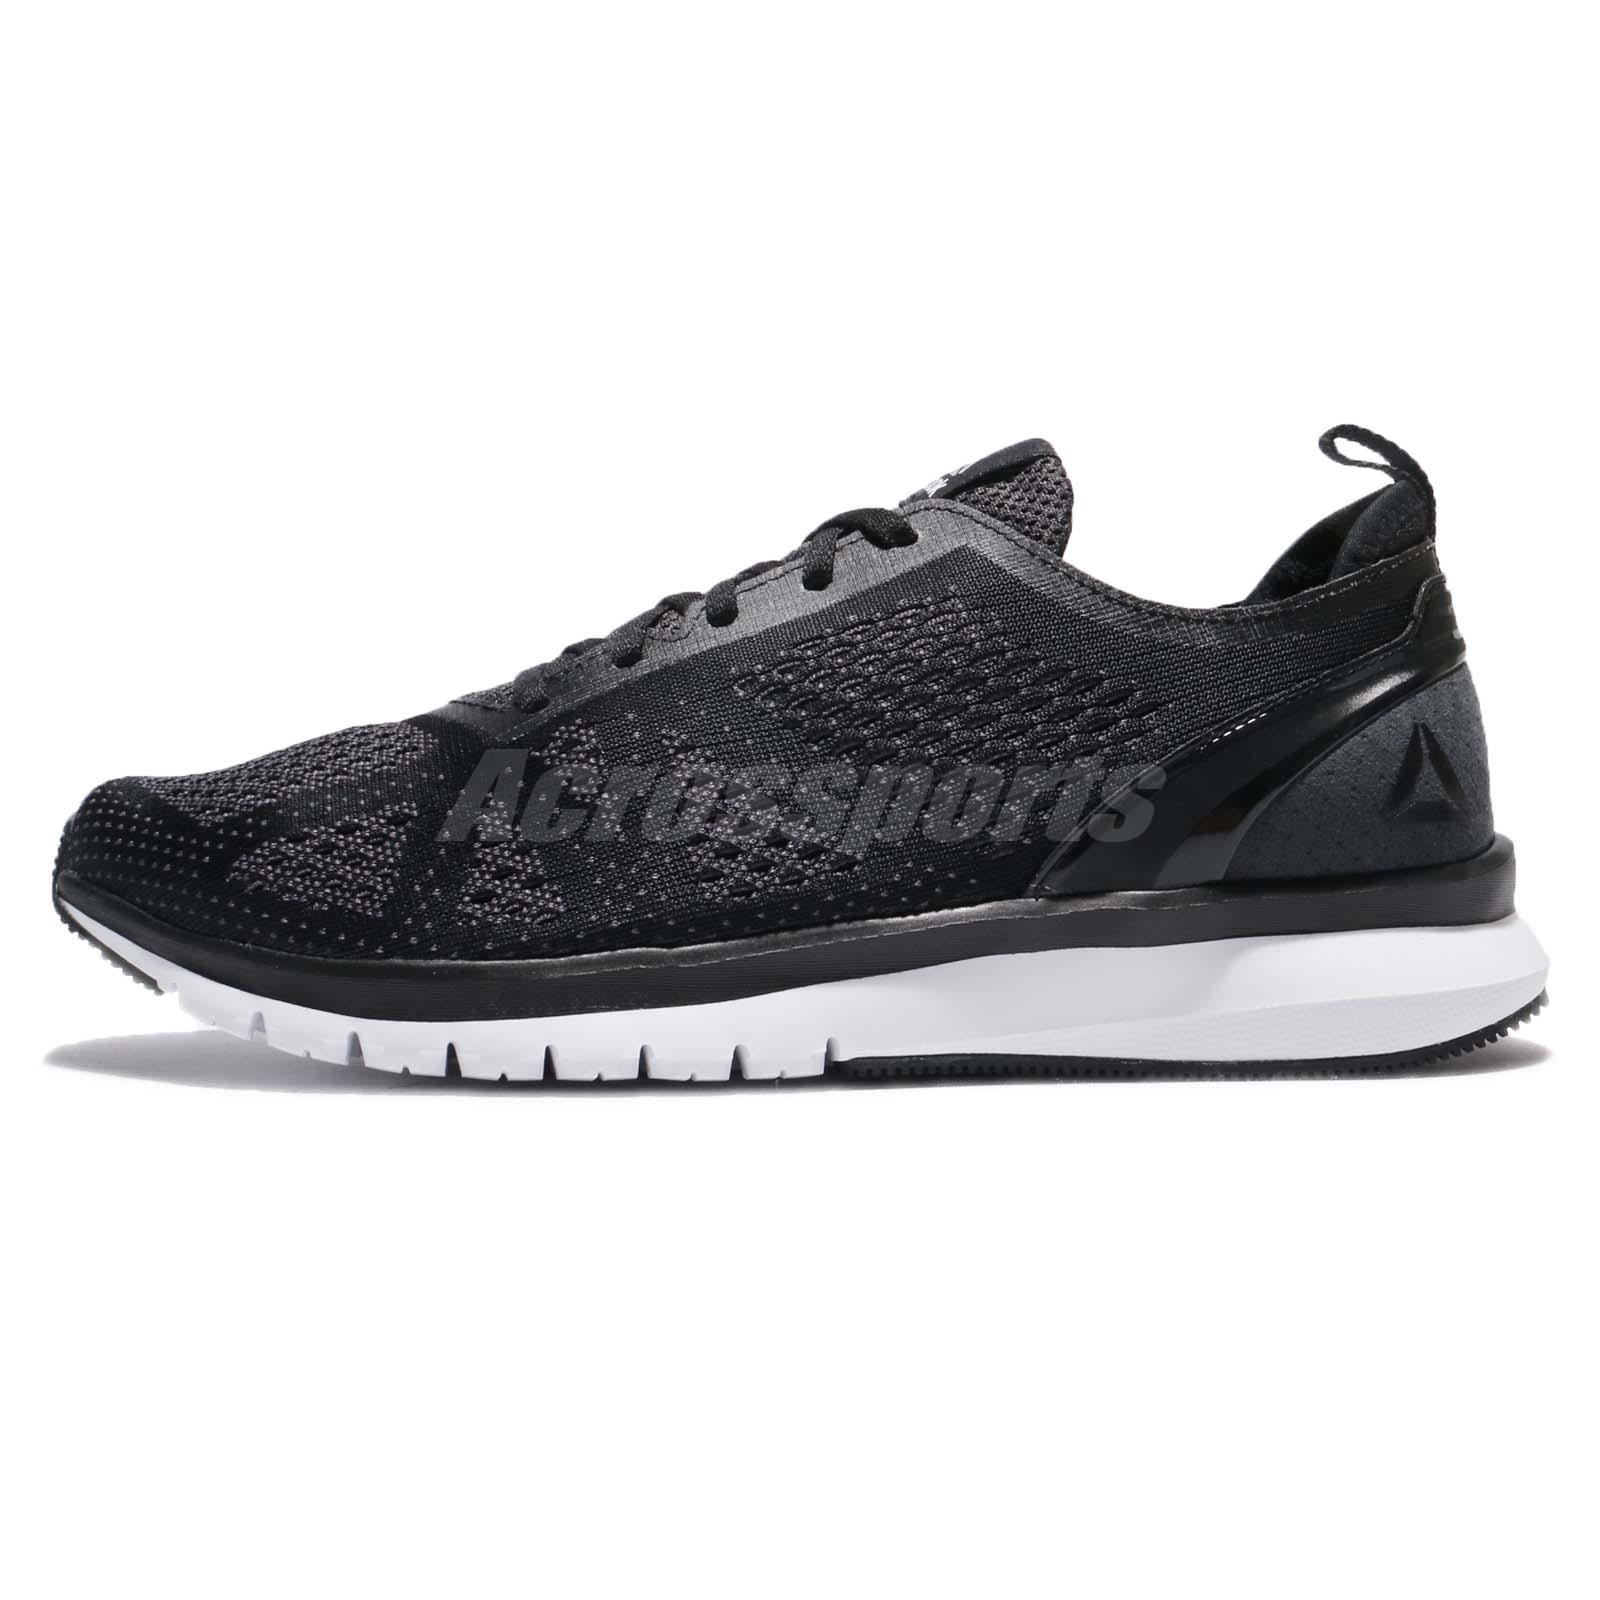 reebok mens running shoes. reebok print smooth clip ultk ultraknit black white men running shoes bs8574 mens s